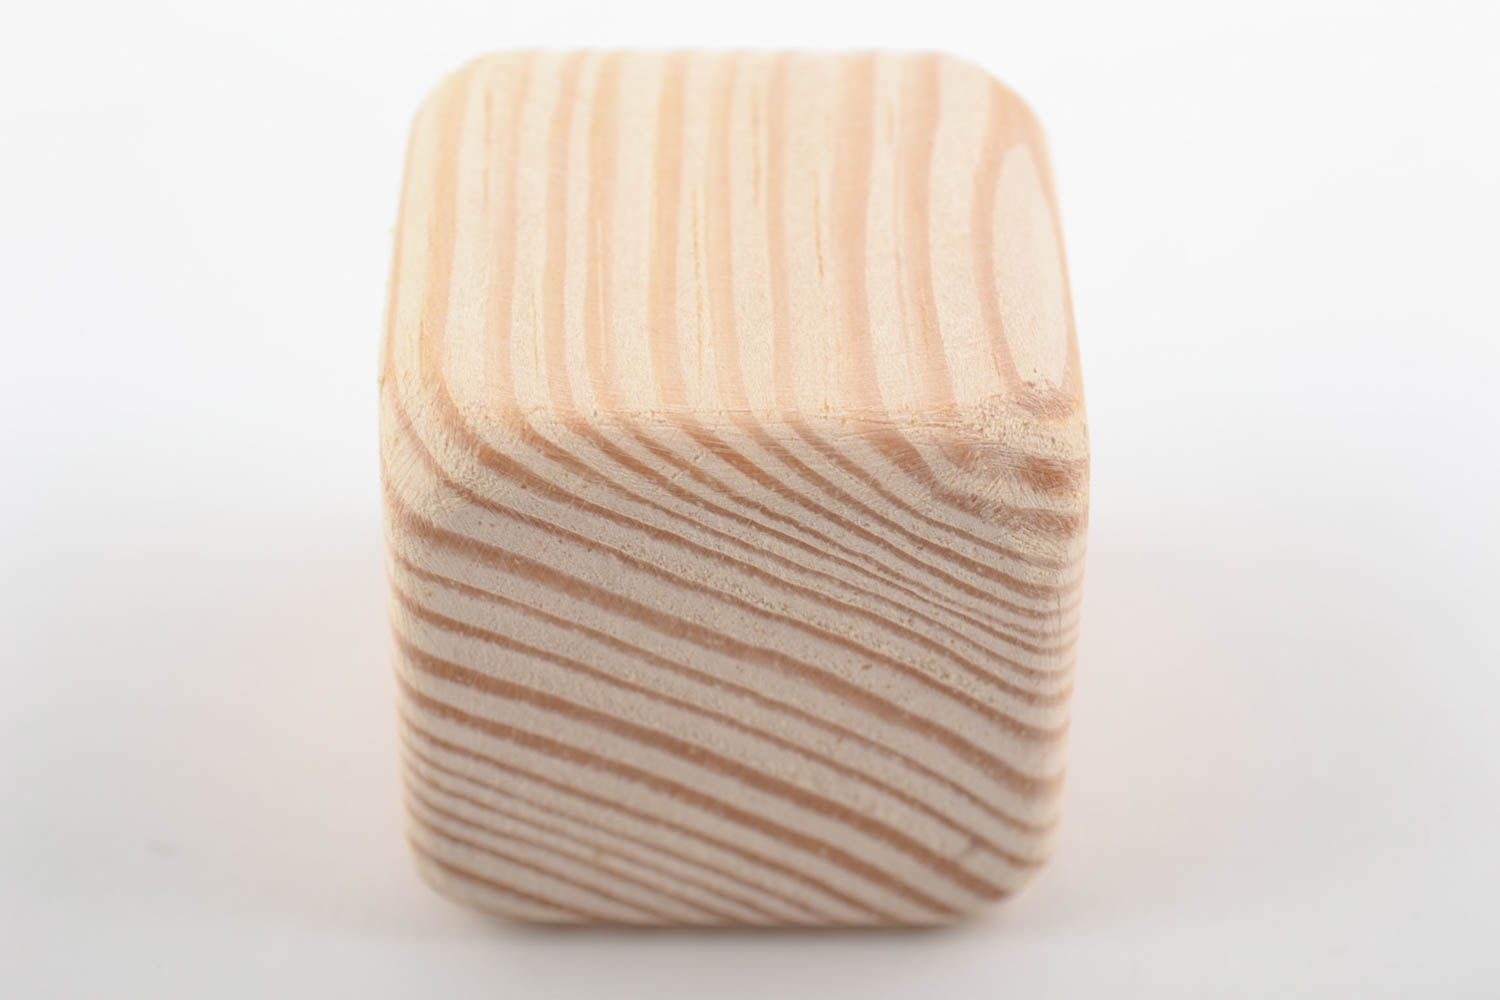 Handmade small pine wood craft blank for decoration cube toy art supplies photo 4